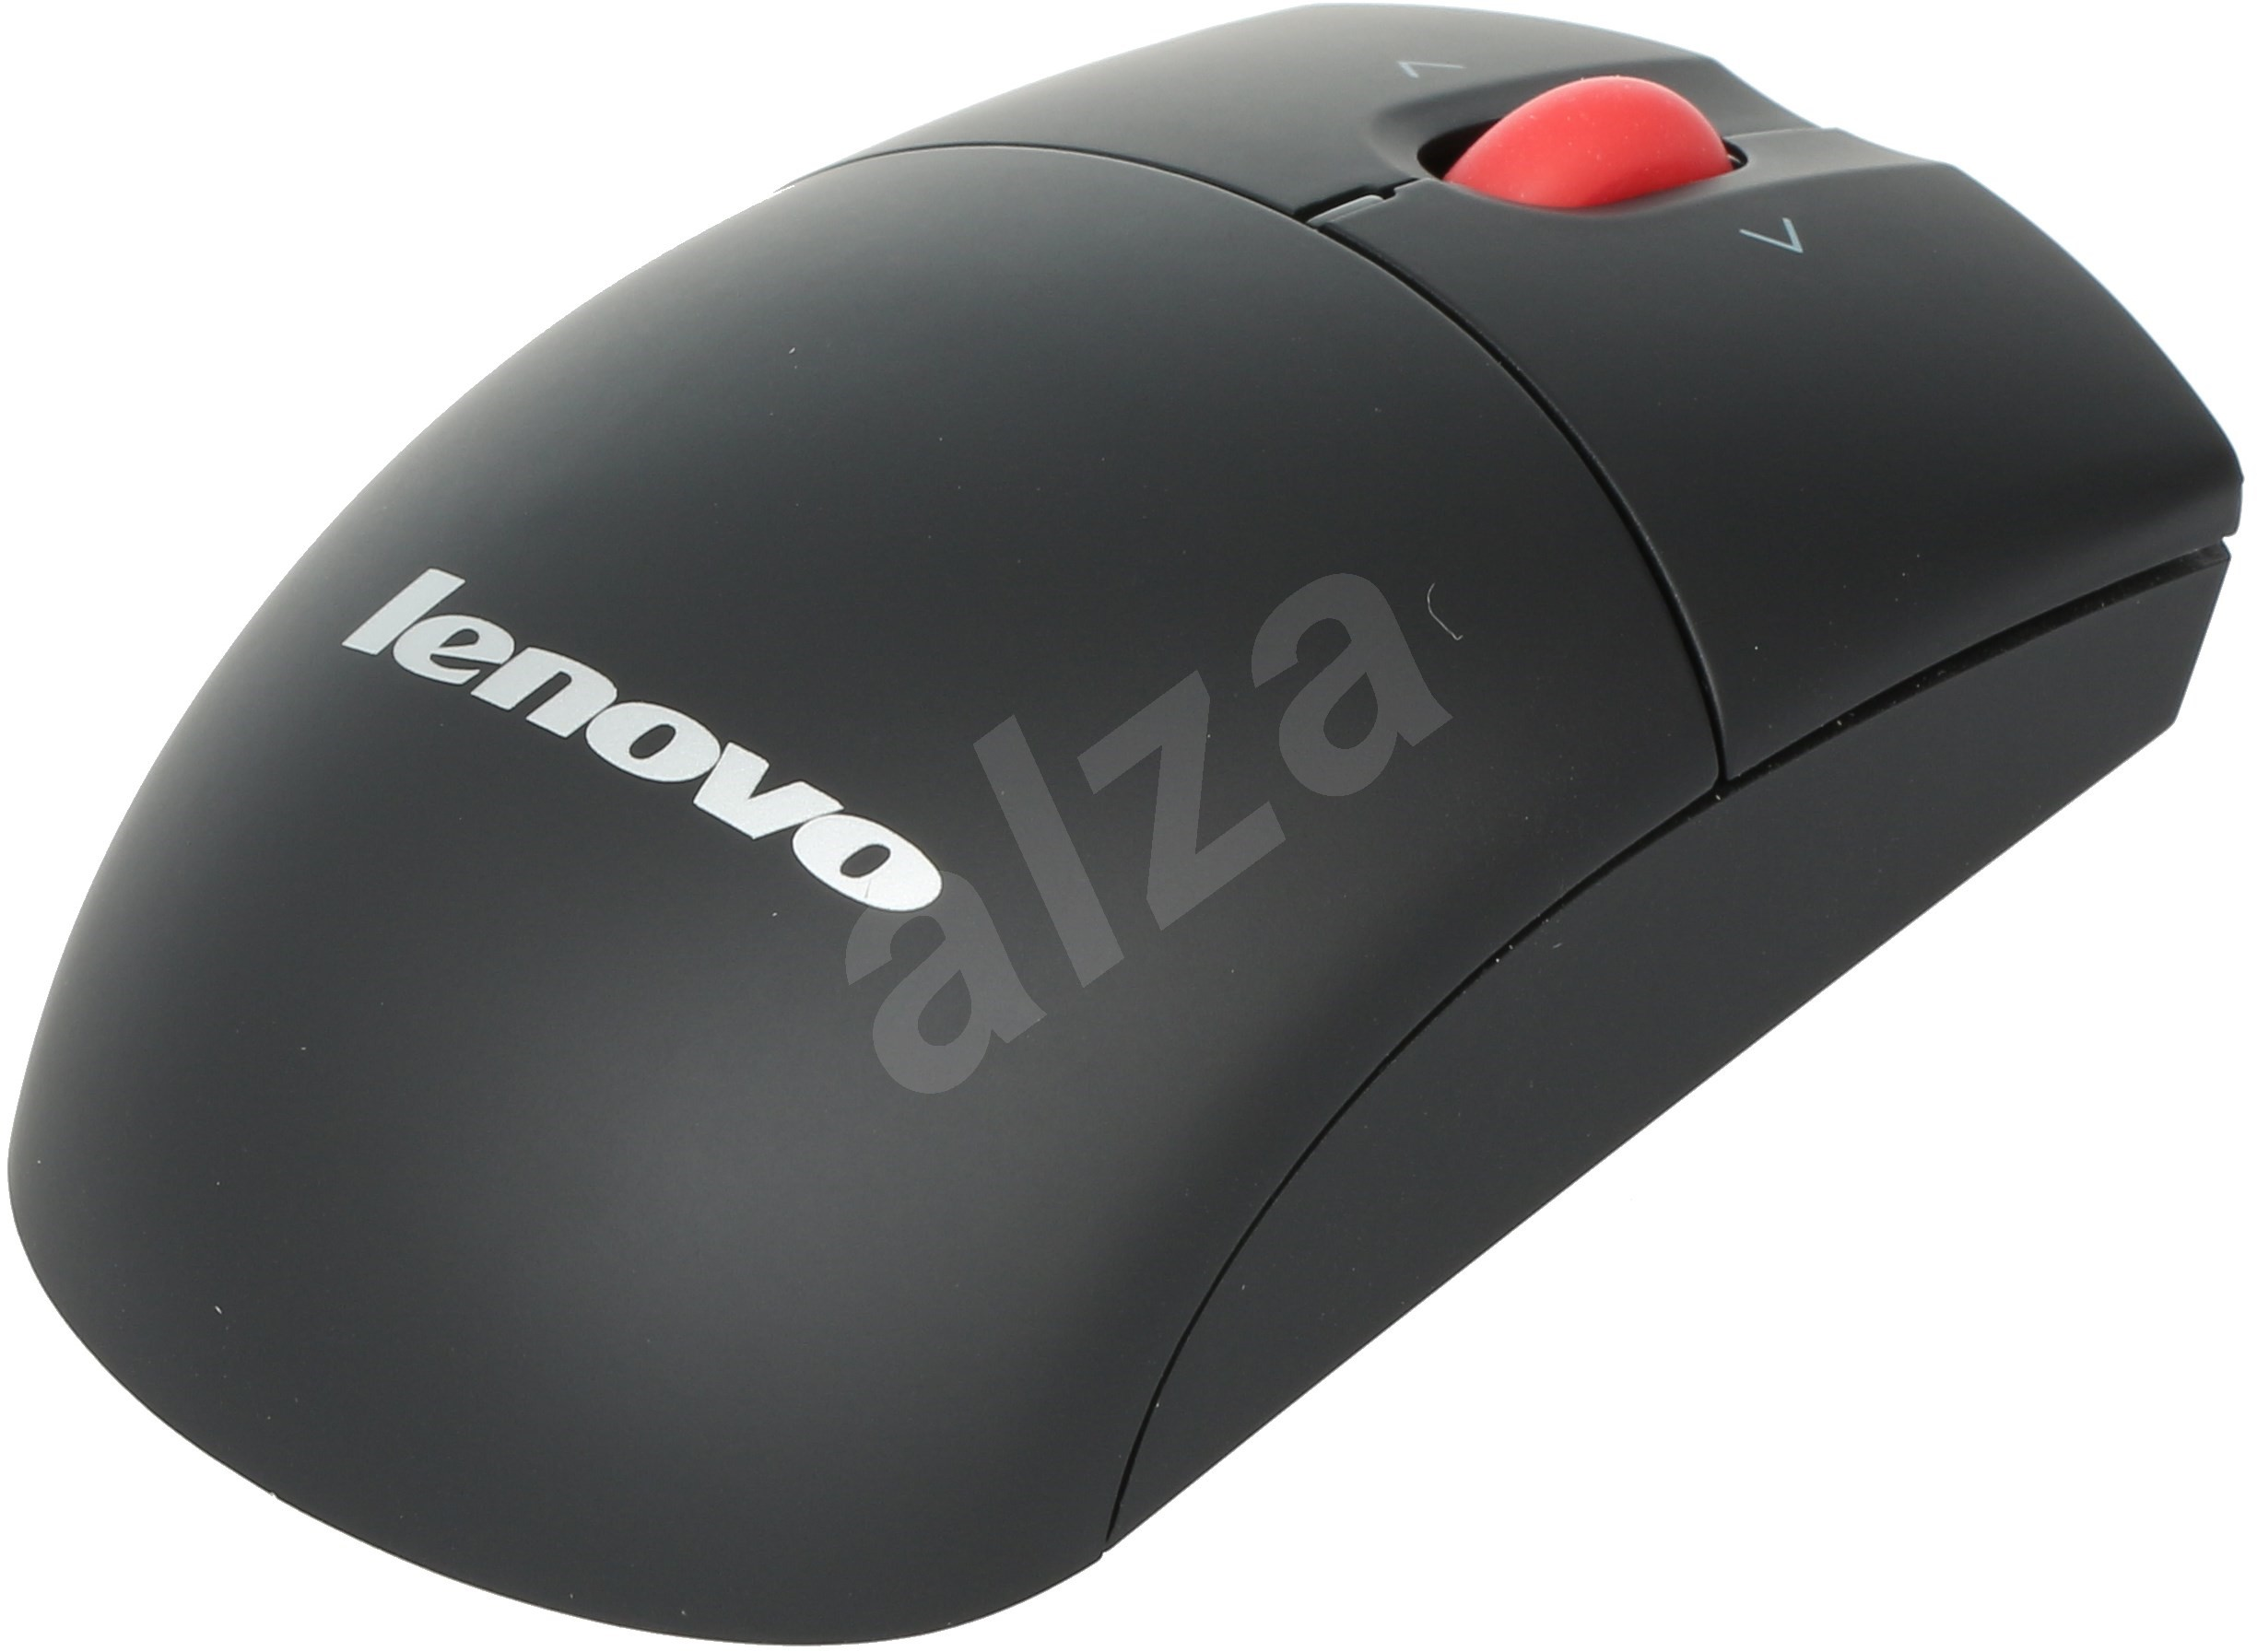 lenovo ultraslim plus wireless keyboard and mouse mouse keyboard set. Black Bedroom Furniture Sets. Home Design Ideas